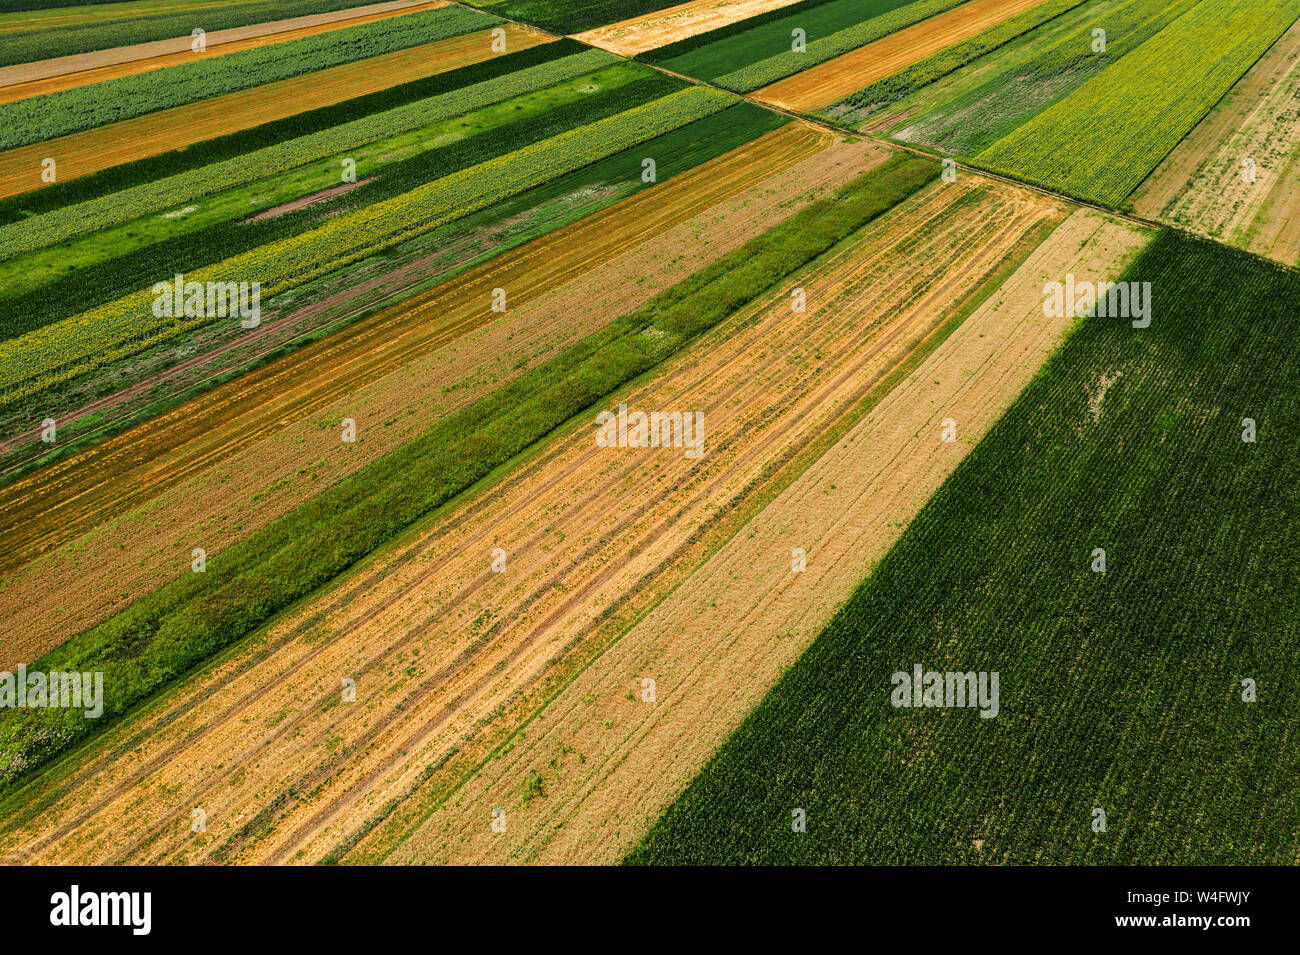 Aerial view of cultivated agricultural fields in summer, beautiful countryside patchwork landscape from drone pov Stock Photo